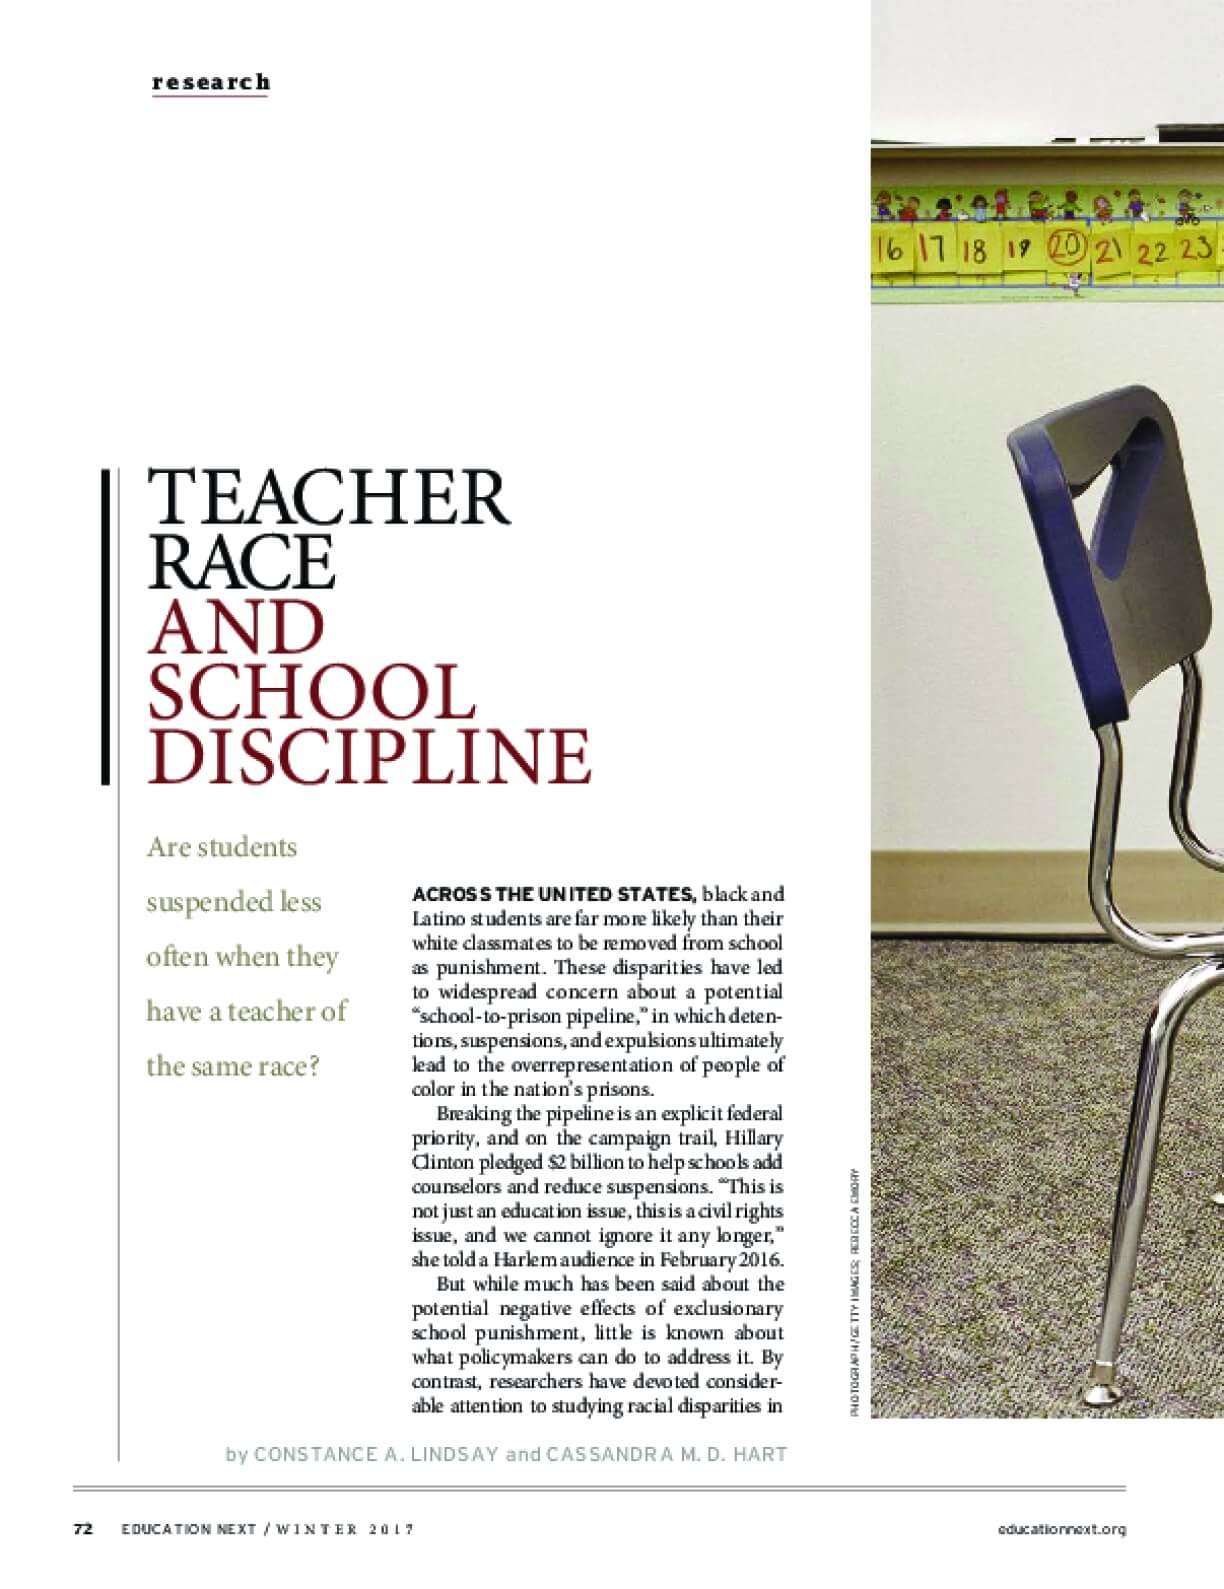 Does Exposure to Teachers of the Same Race Affect Discipline?